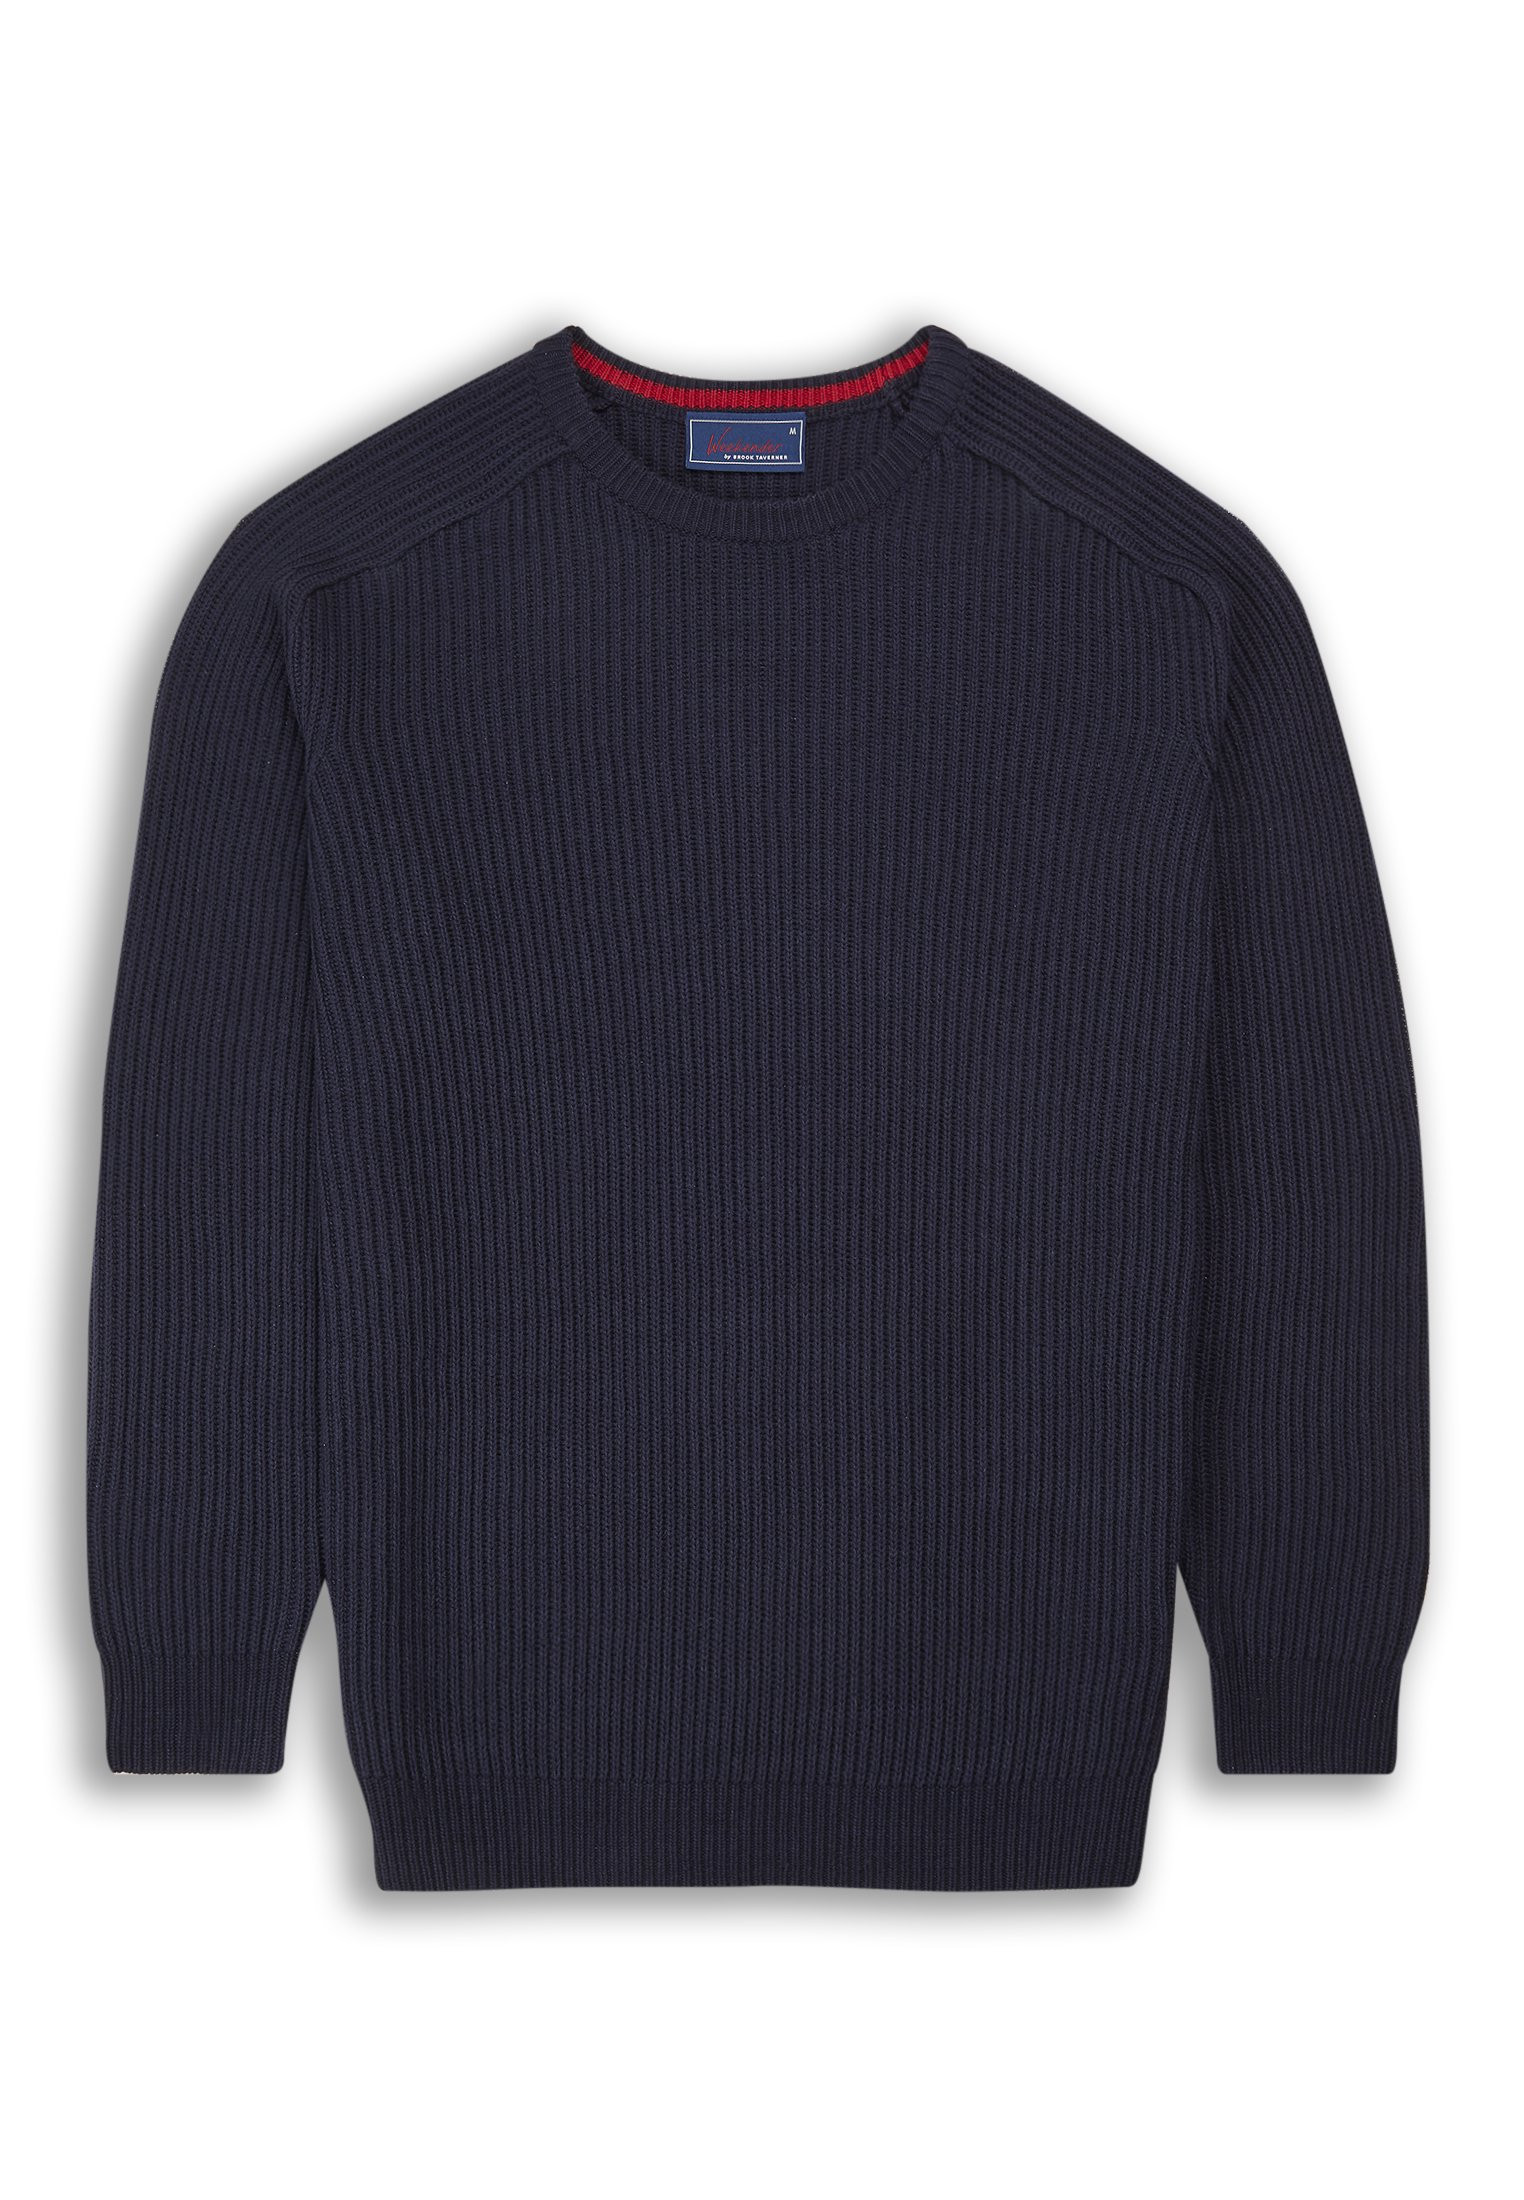 Clyston Navy Ribbed Crew Neck